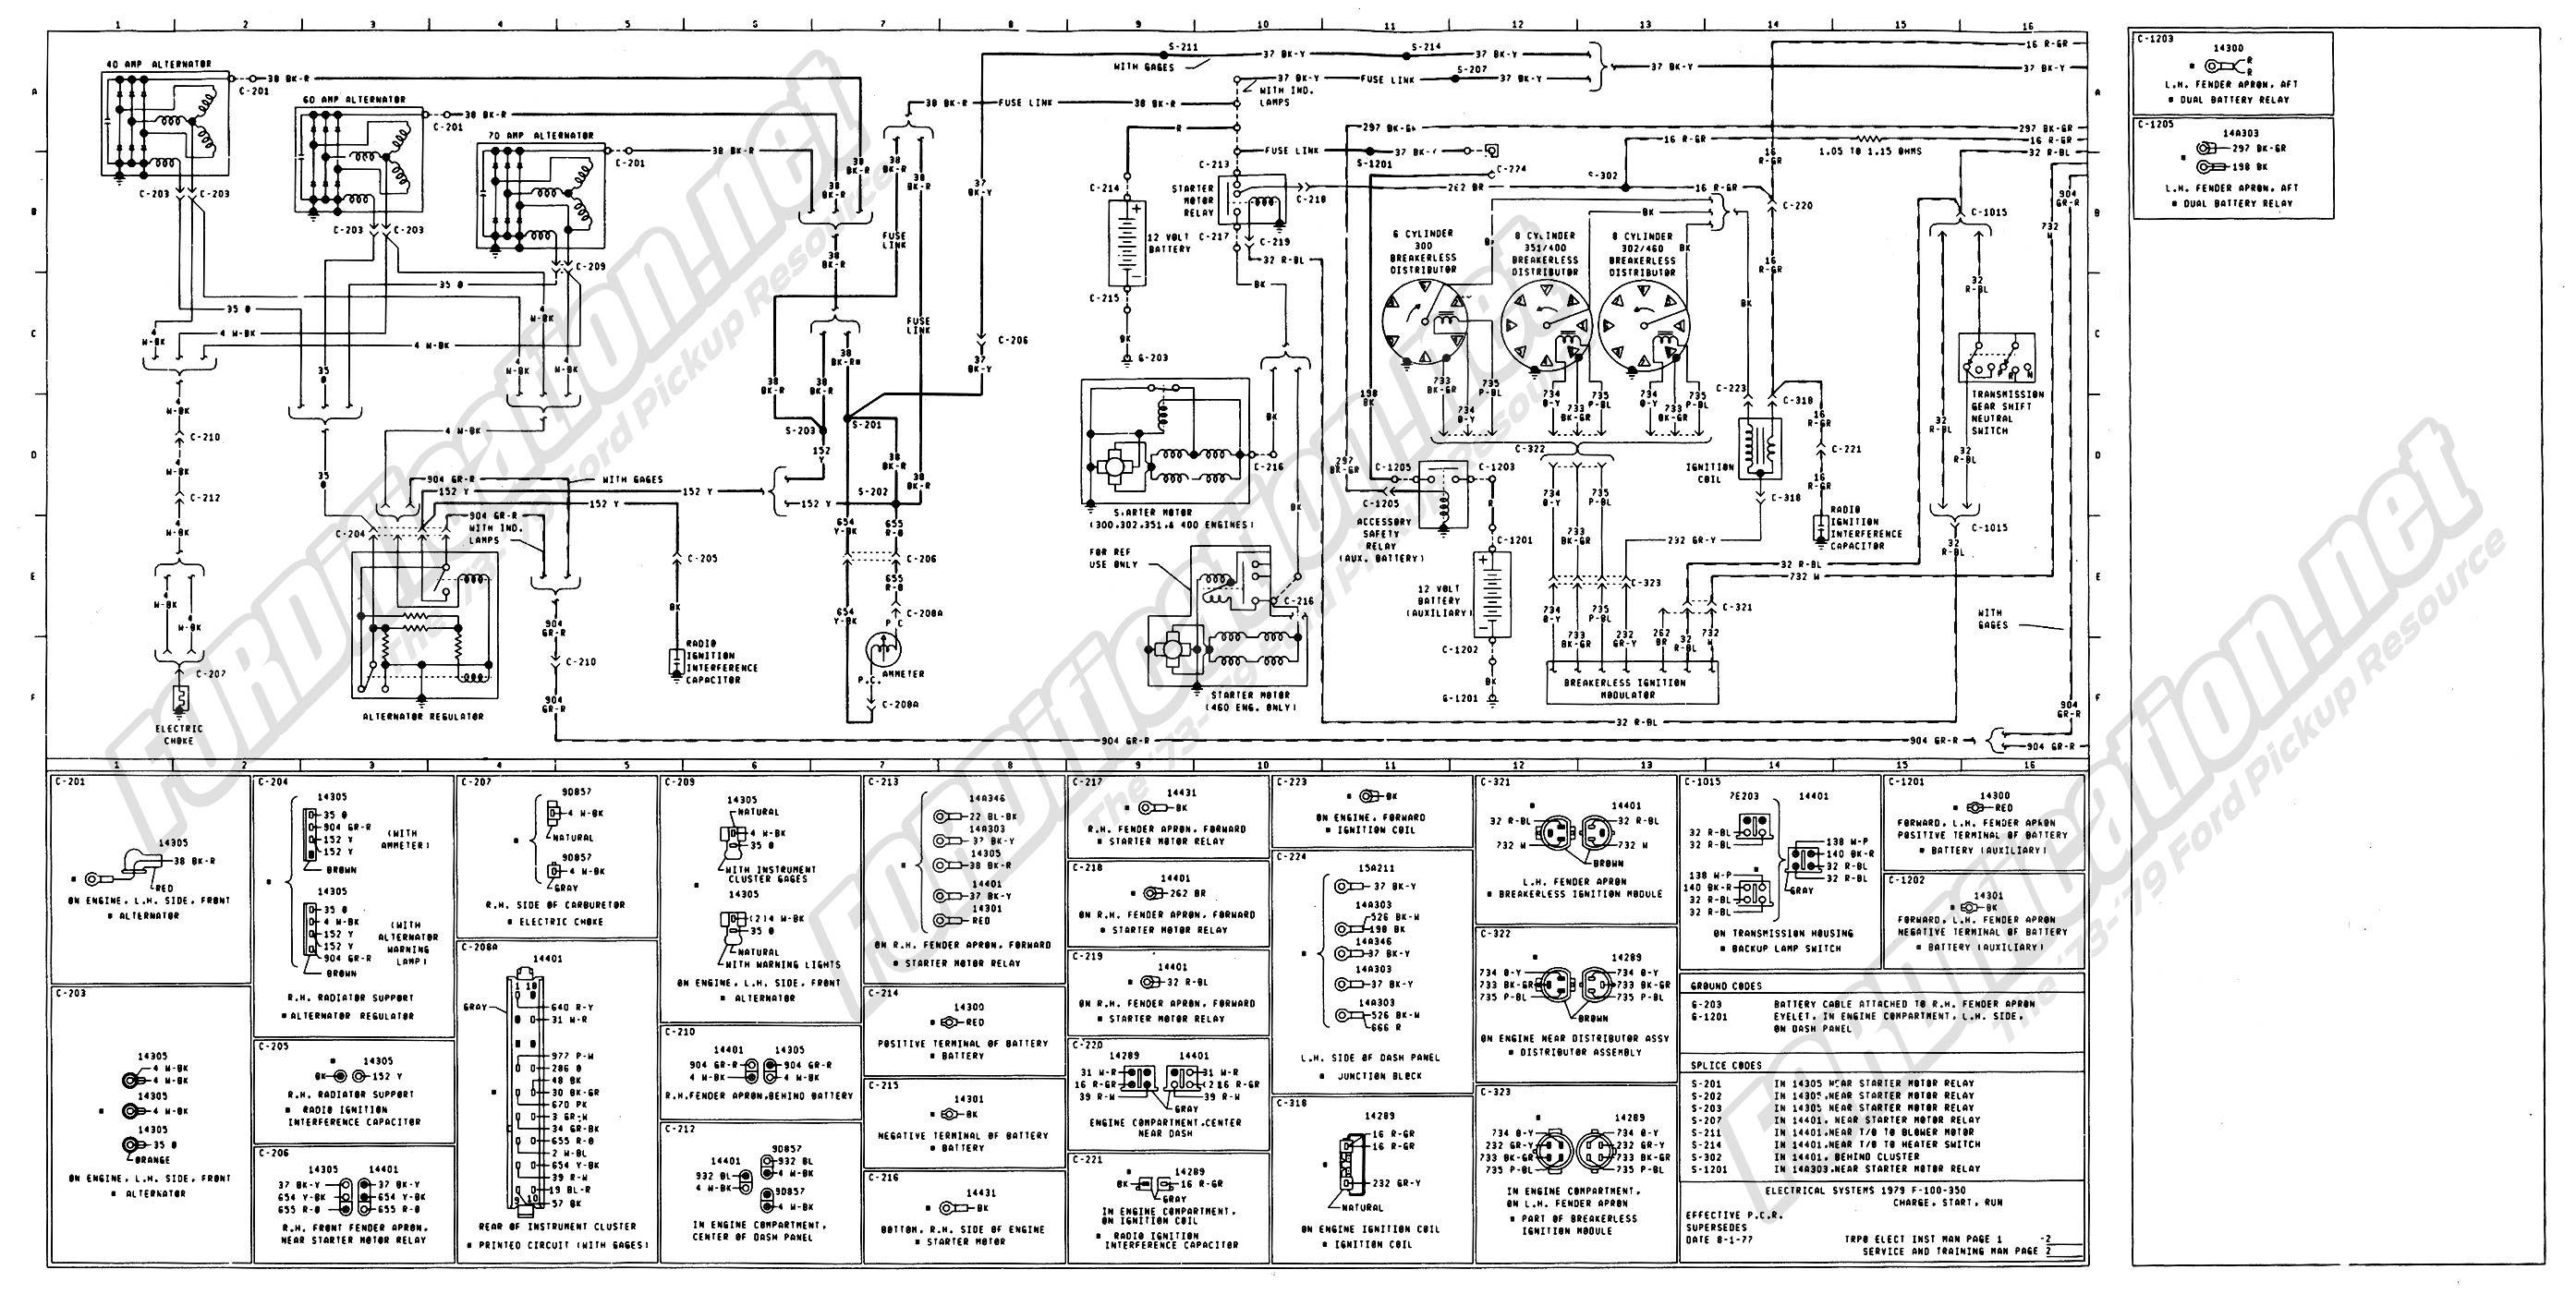 1973 1979 ford truck wiring diagrams \u0026 schematics fordification net Ford Bronco Timing Chain Diagram Wiring Diagram 73 Ford Bronco Radio #4